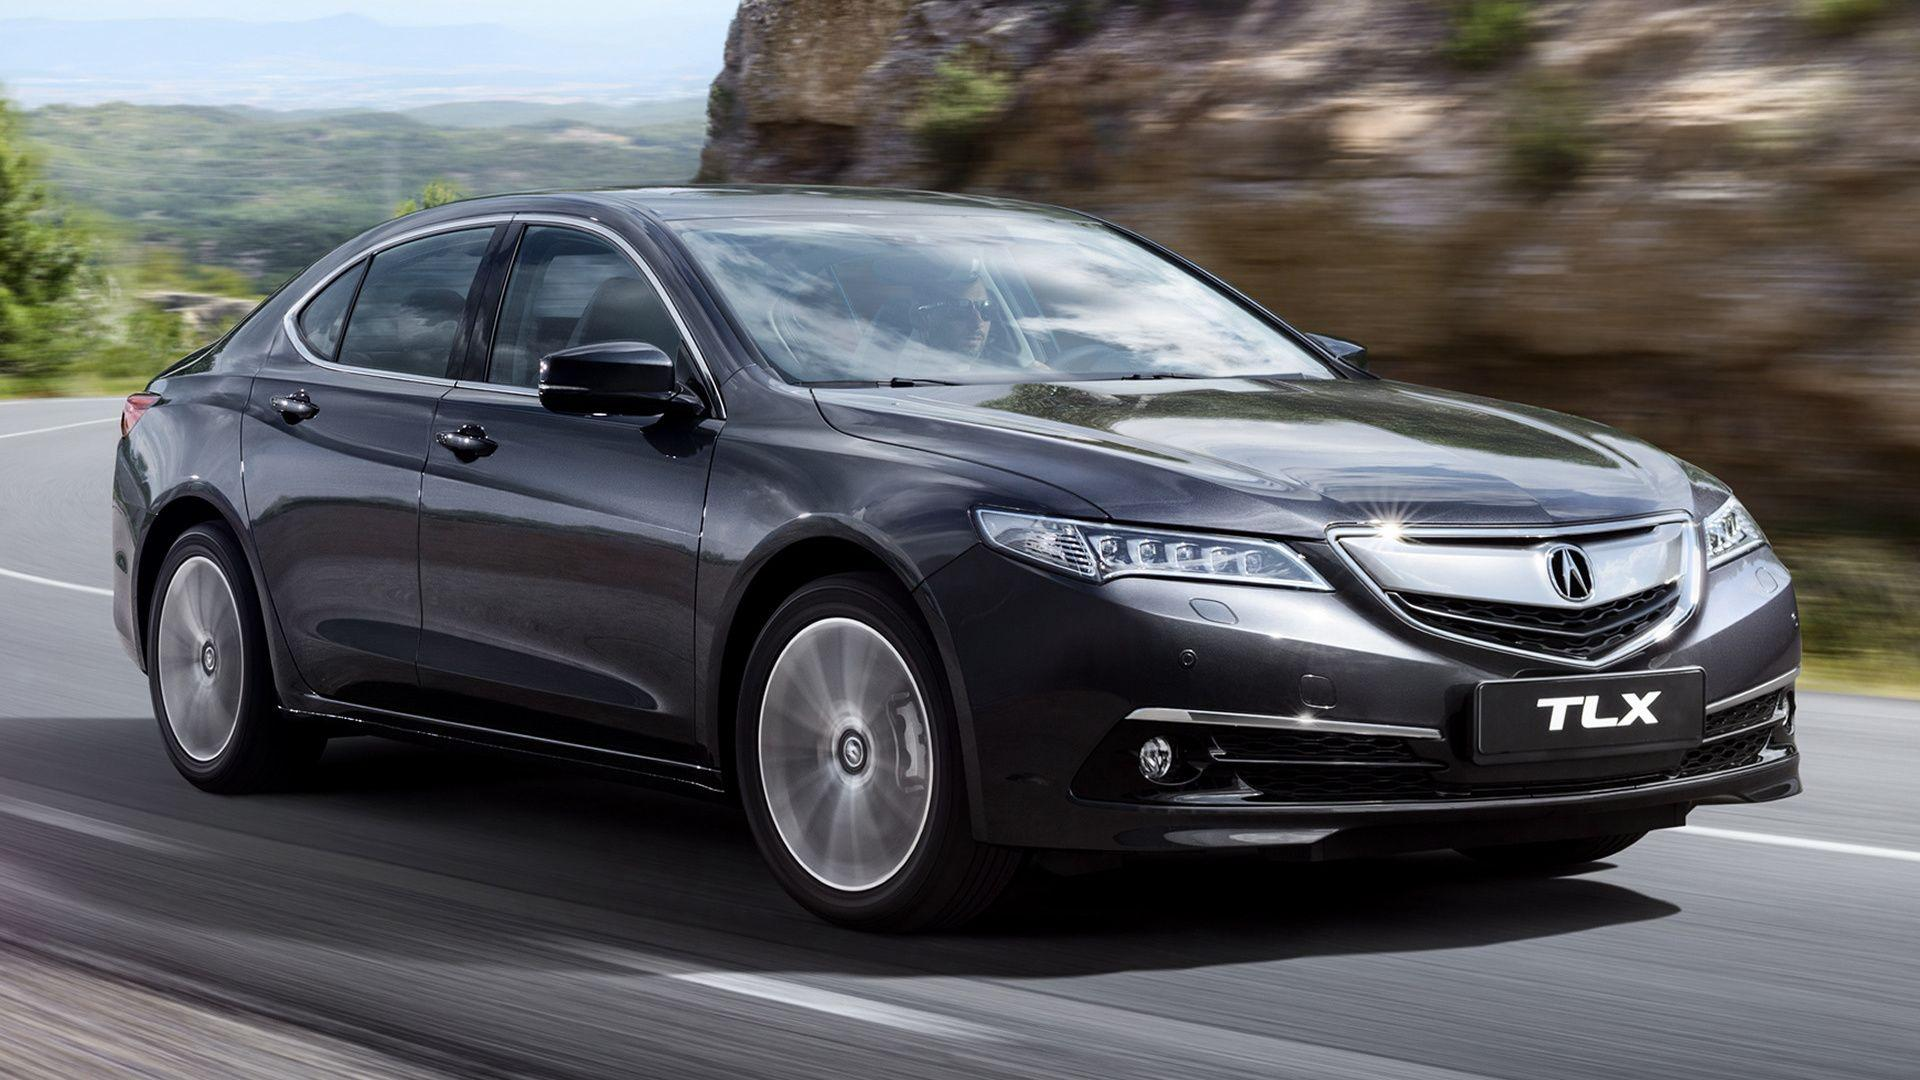 Acura TLX (2015) RU Wallpapers and HD Images - Car Pixel